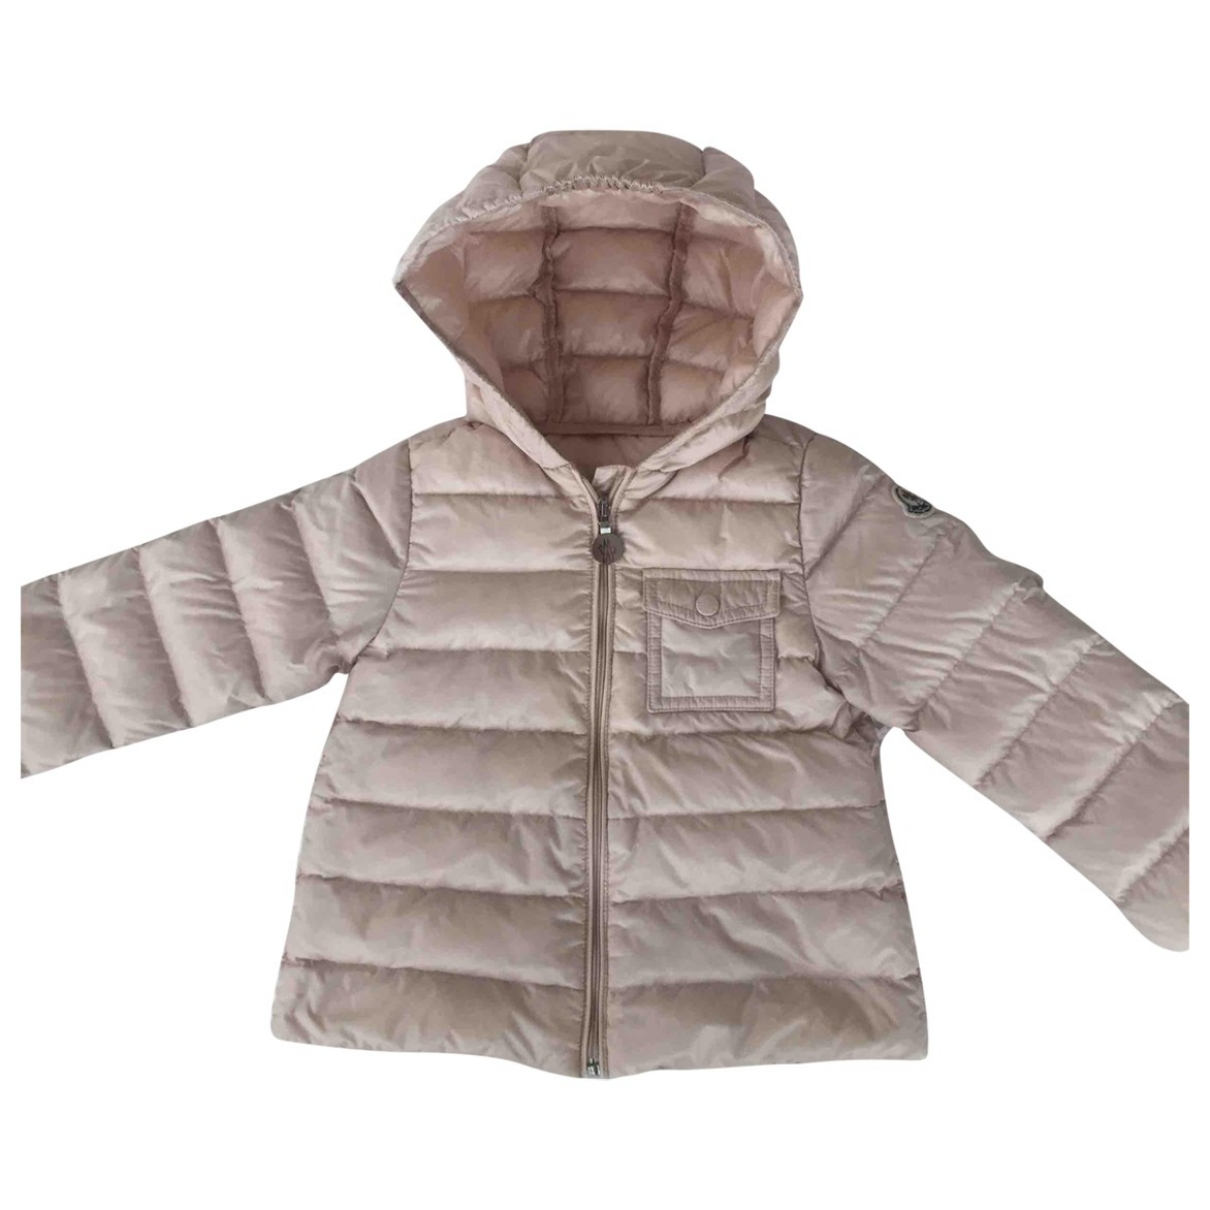 Moncler Hood Pink jacket & coat for Kids 2 years - up to 86cm FR